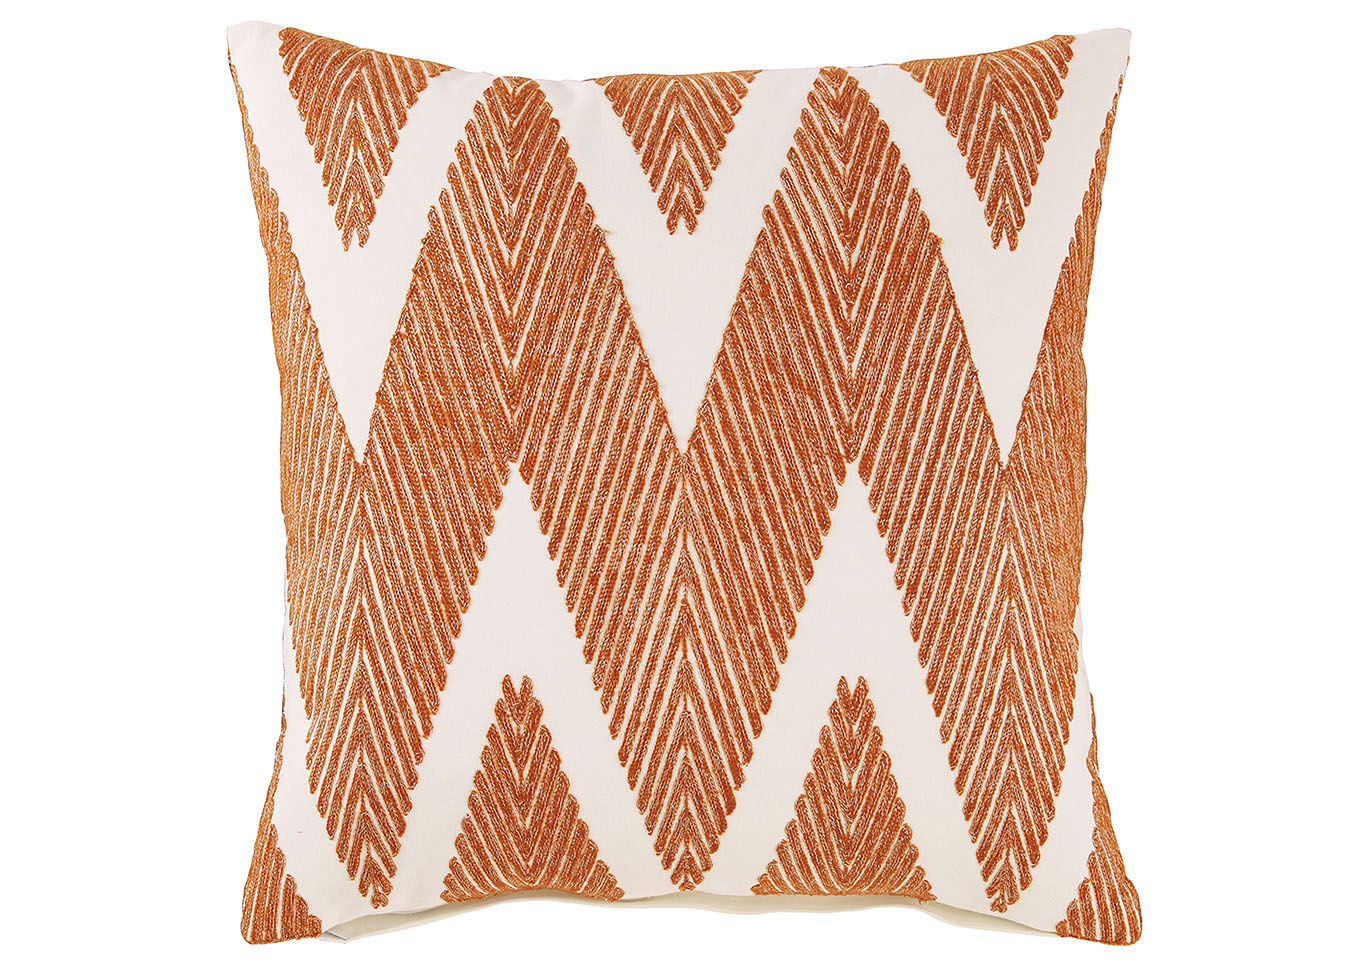 Carlina Orange Pillows (4/CS),Signature Design By Ashley